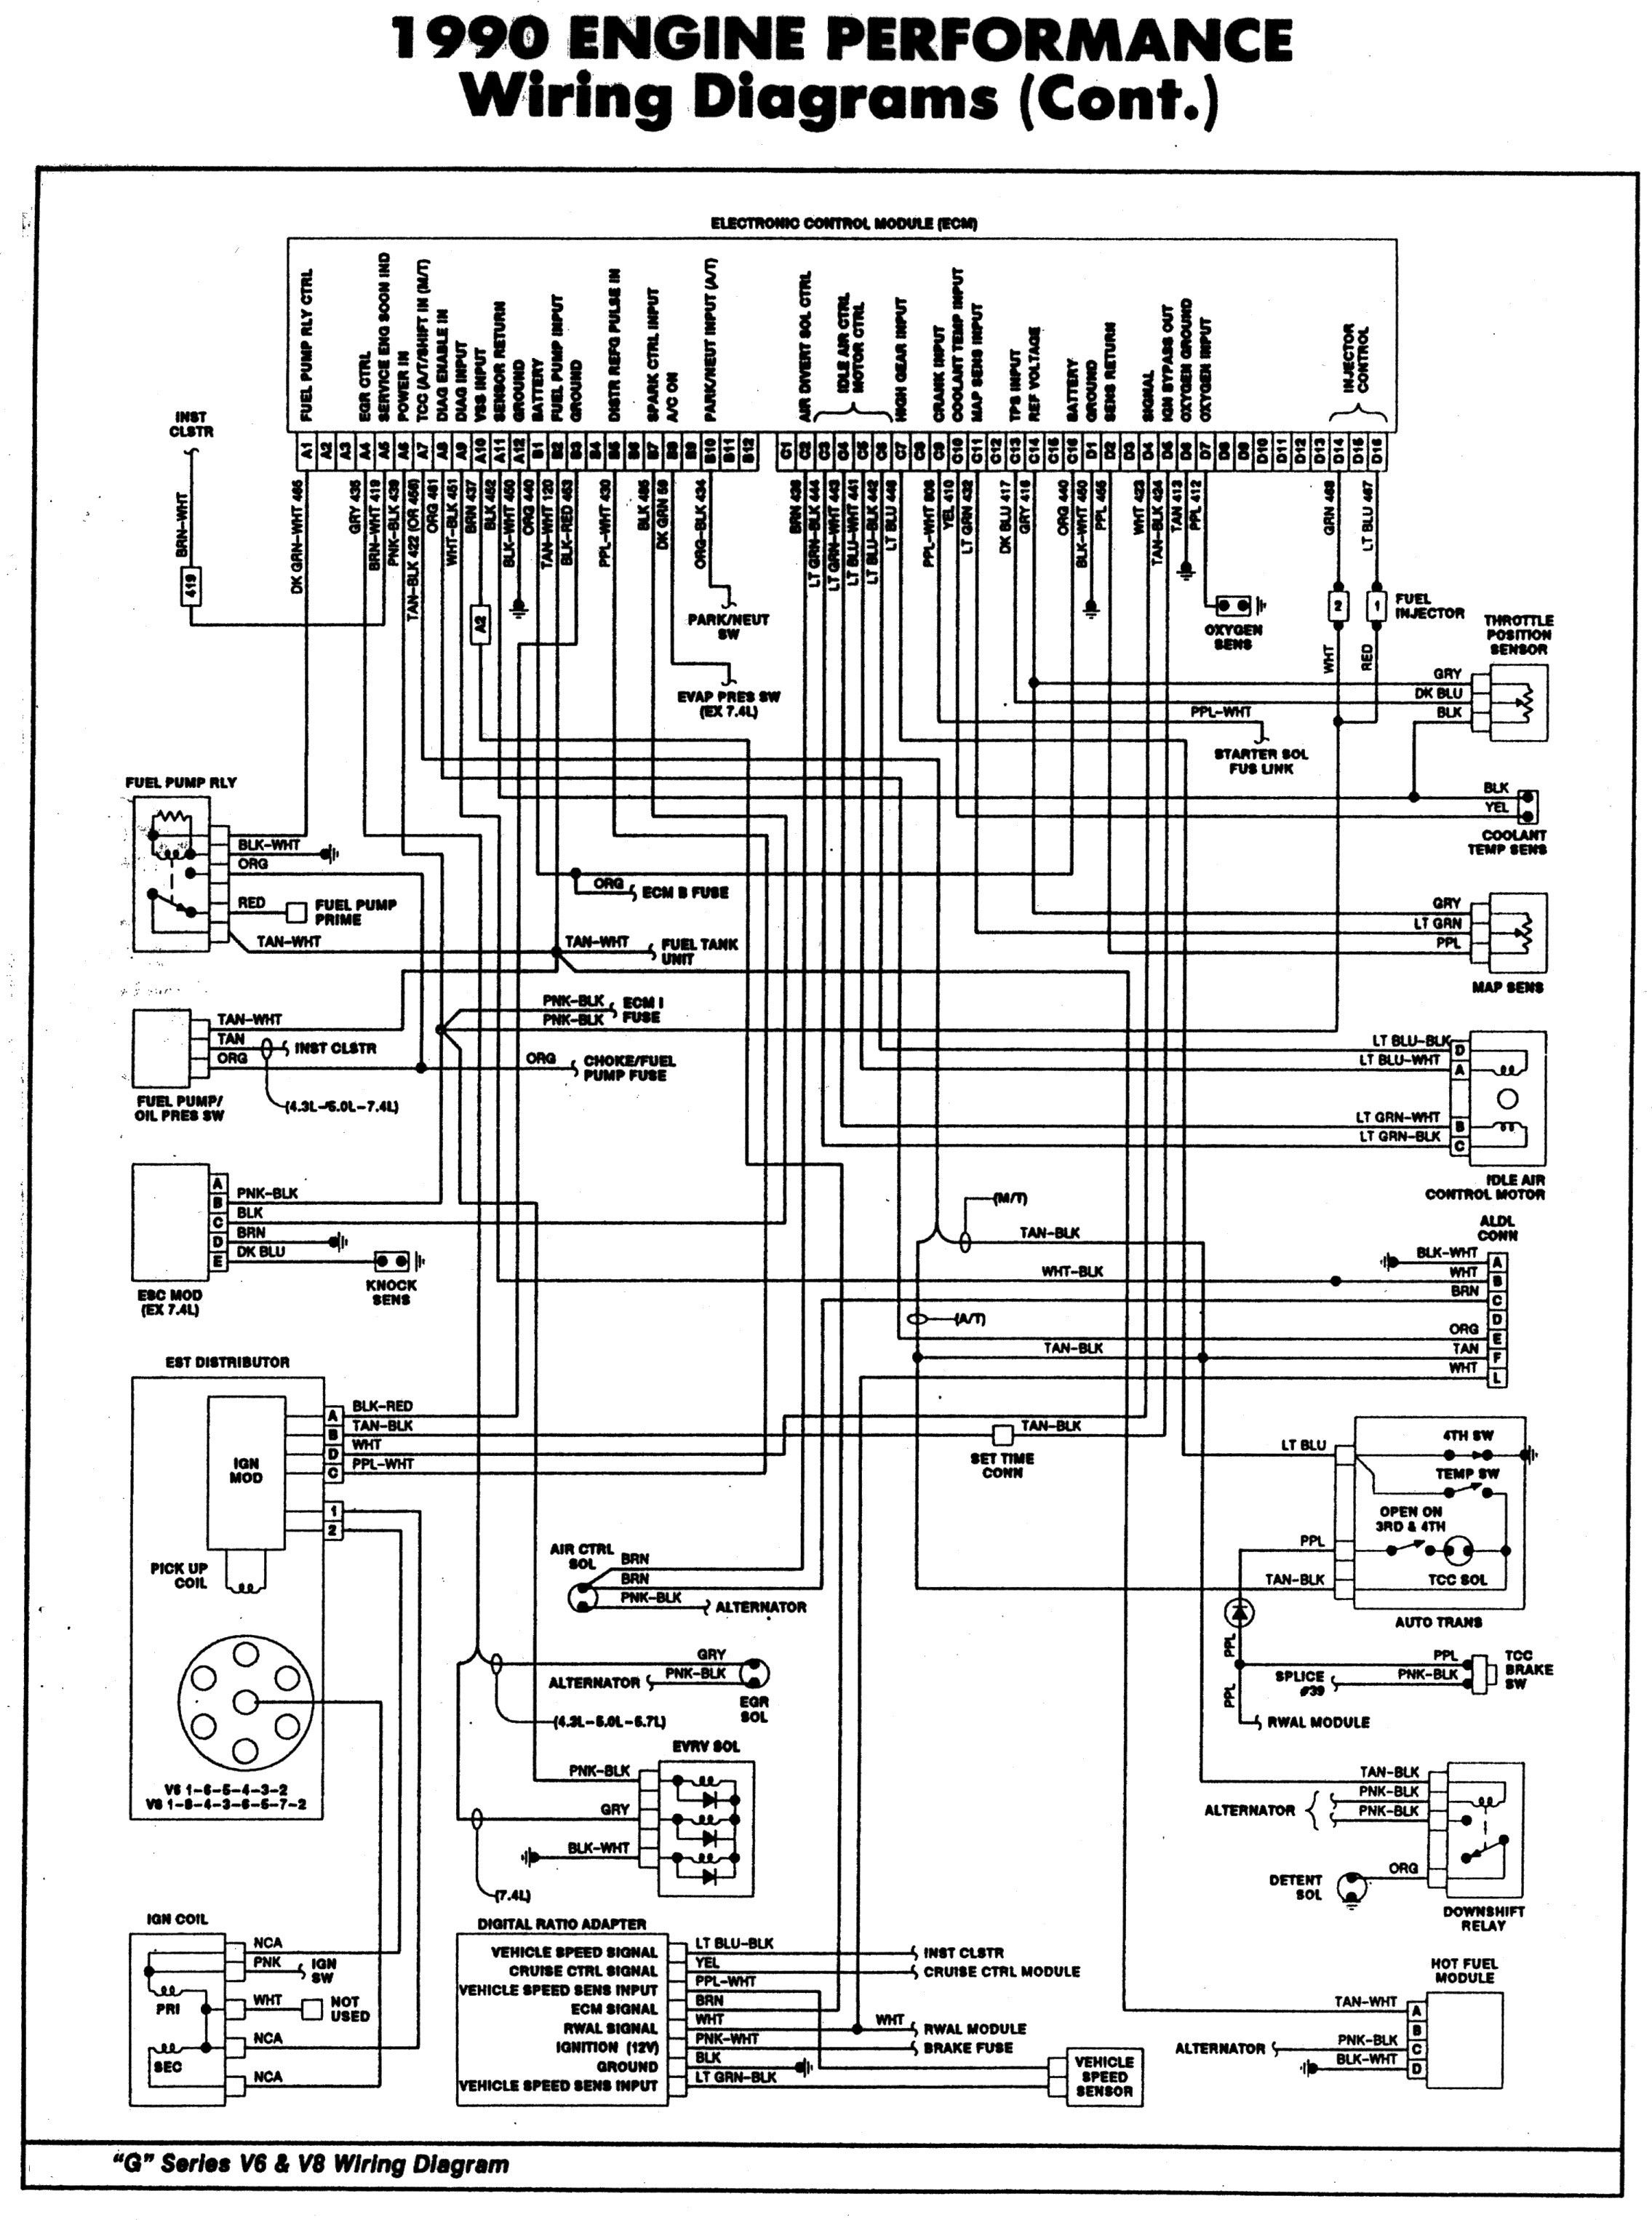 1994 c1500 wiring diagram | wiring diagram  wiring diagram - autoscout24